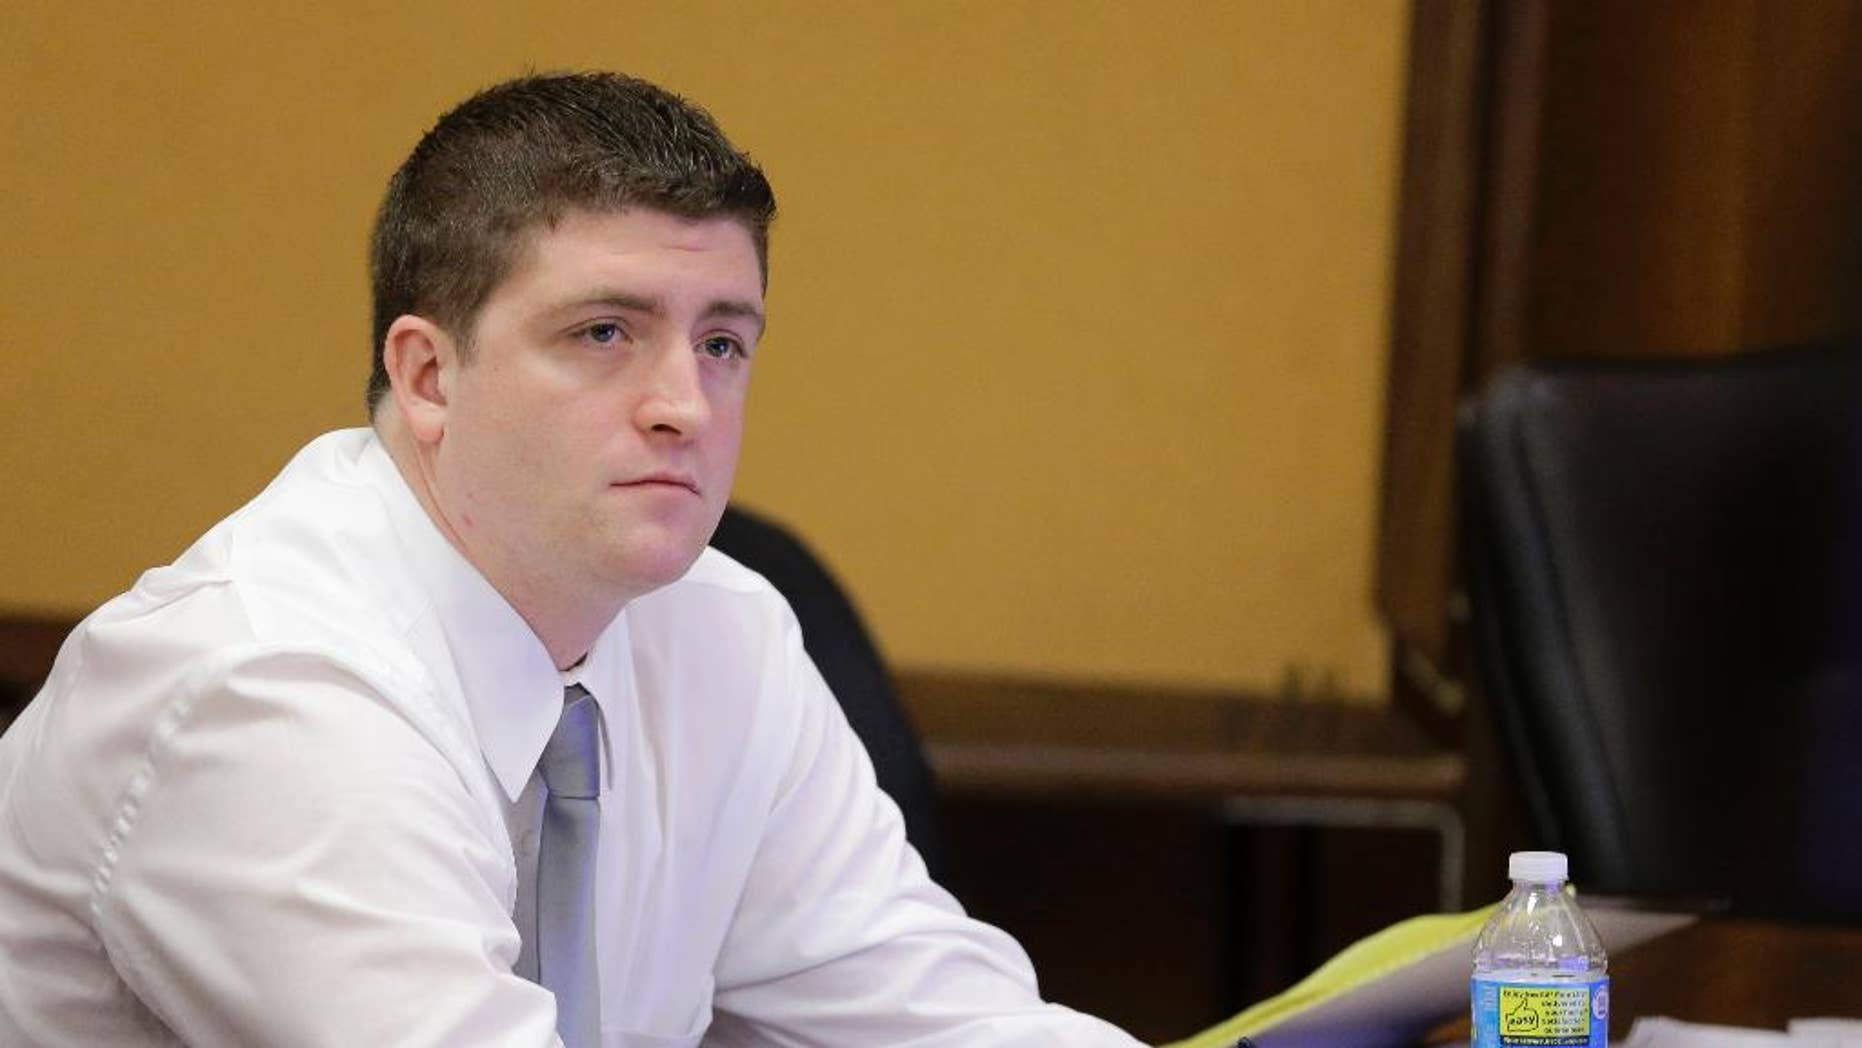 Cleveland police officer Michael Brelo listens to testimony during his trial Thursday, April 9, 2015, in Cleveland. Brelo is being tried on two counts of voluntary manslaughter in the November 2012 deaths of Timothy Russell, 43, and Malissa Williams, 30, after a high-speed chase. (AP Photo/Tony Dejak, Pool)